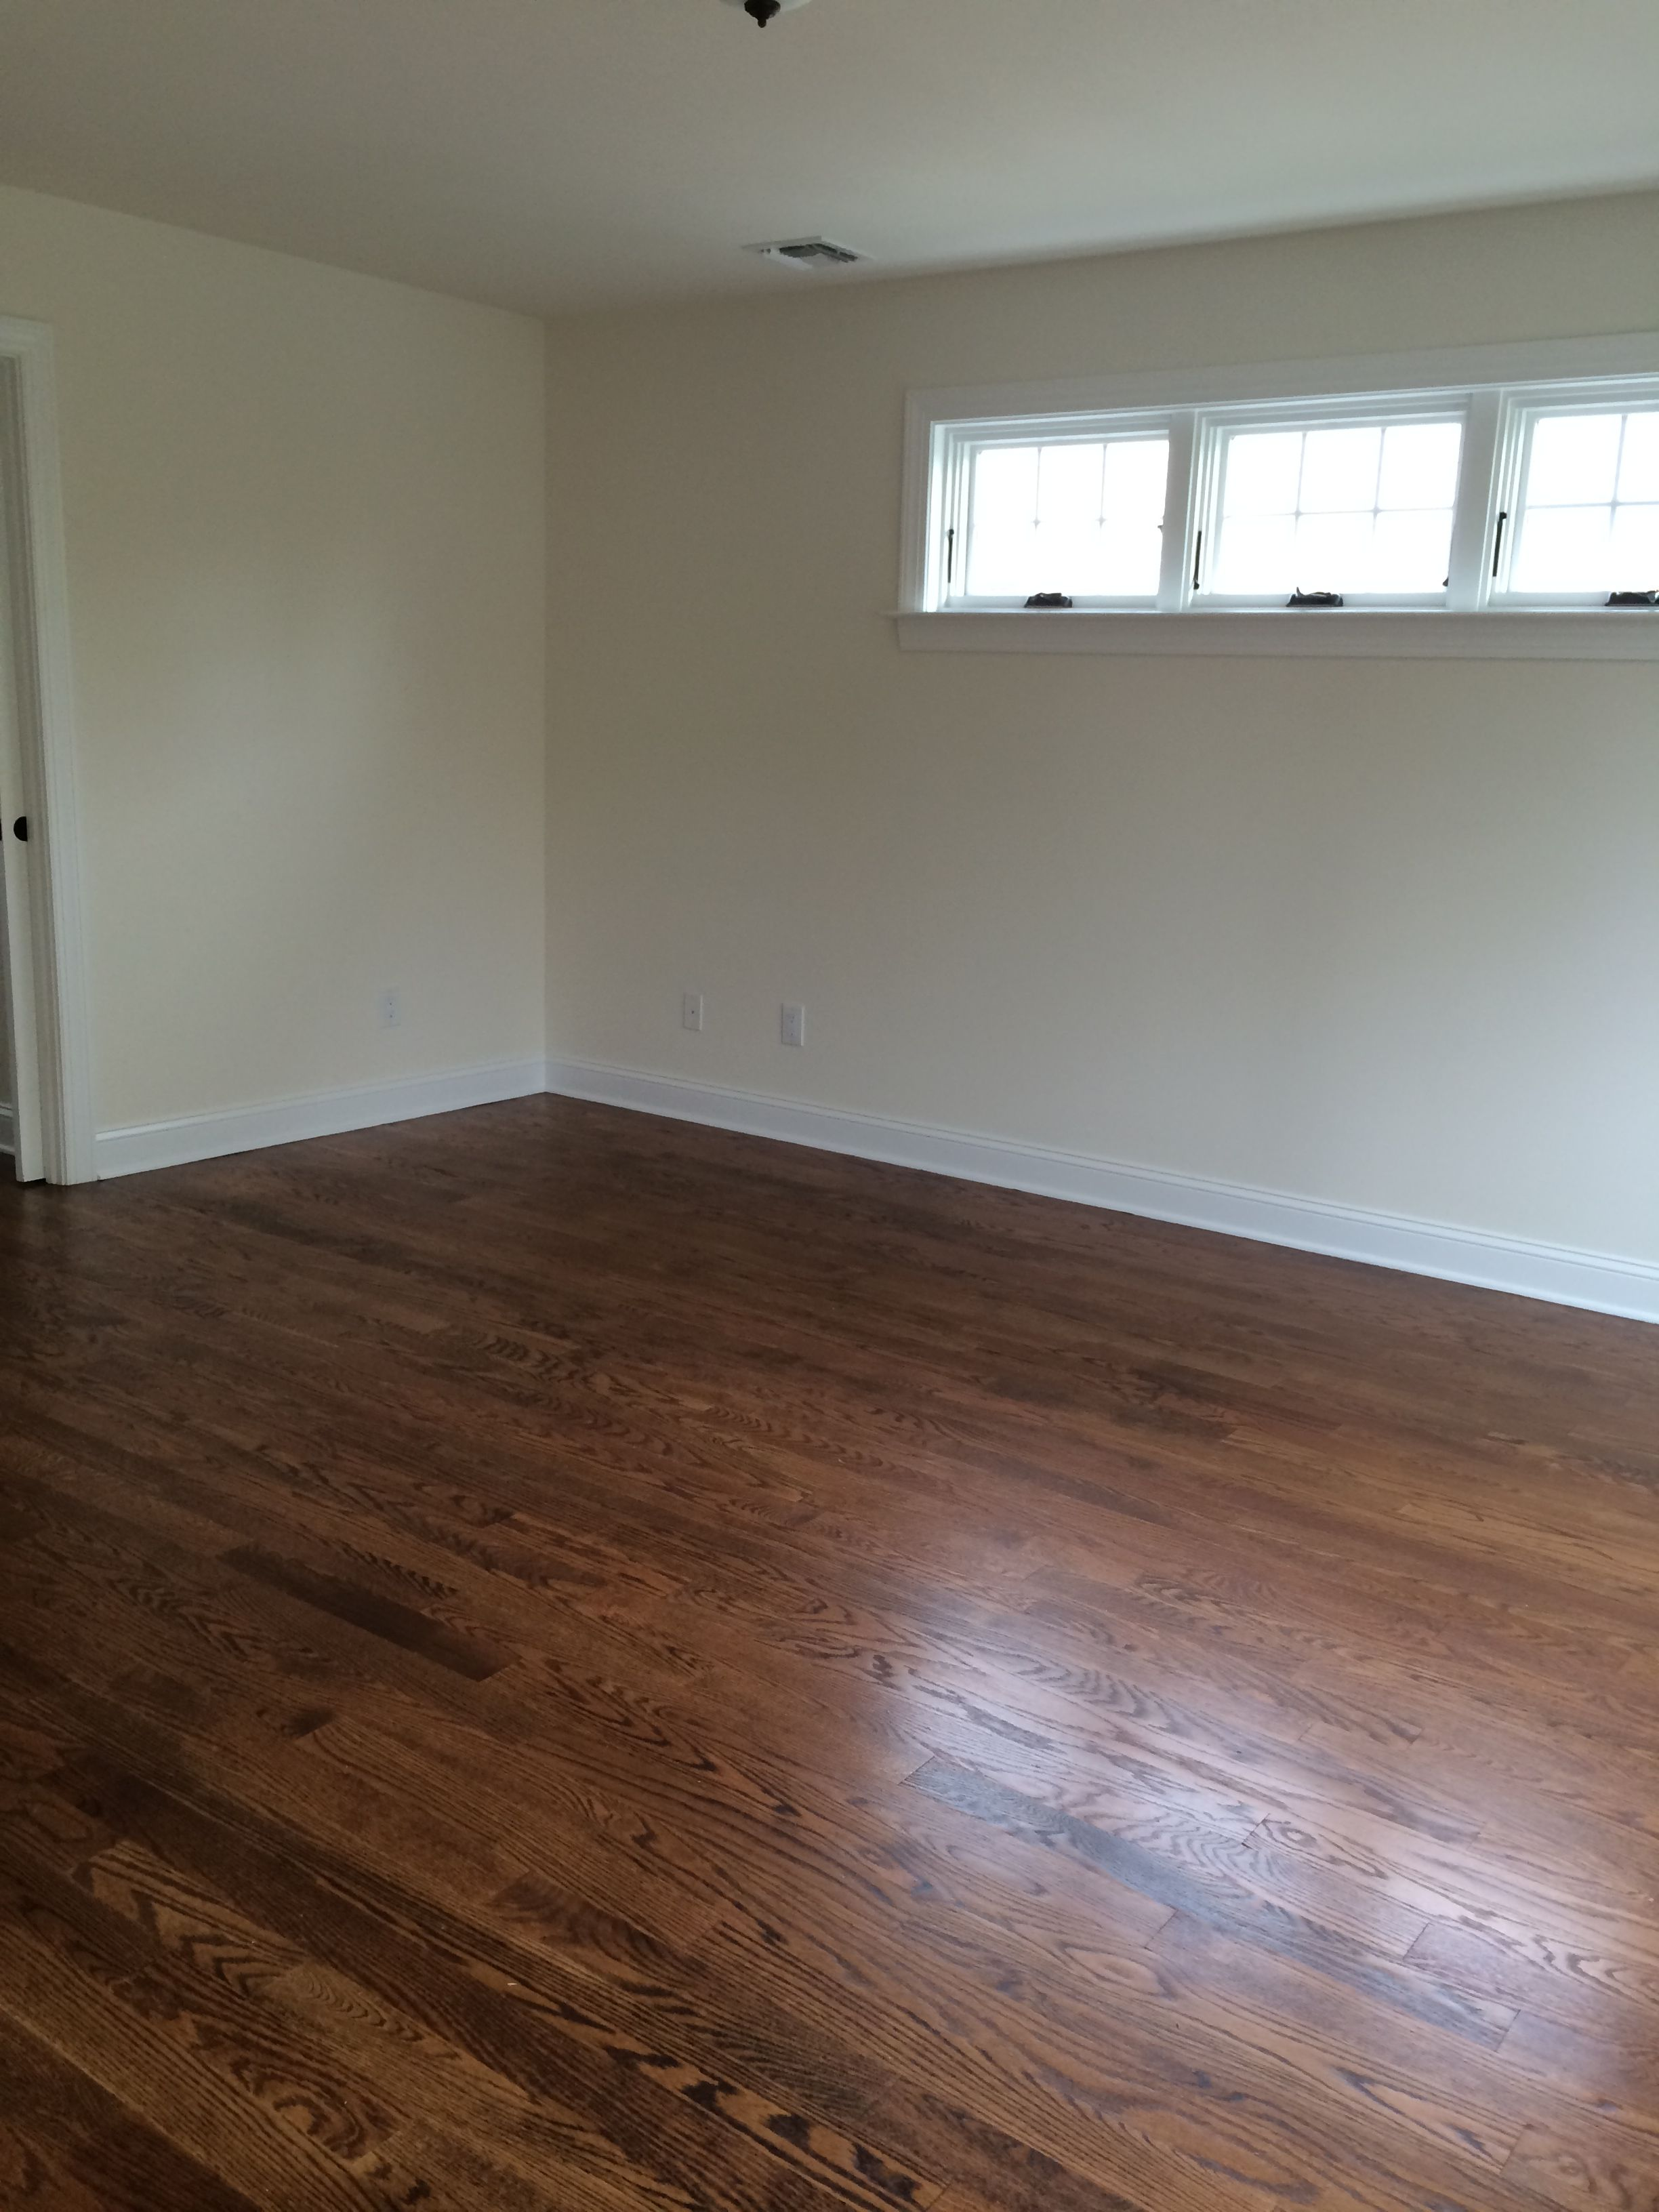 A view of an upstairs room of the rumson house with wood floors and